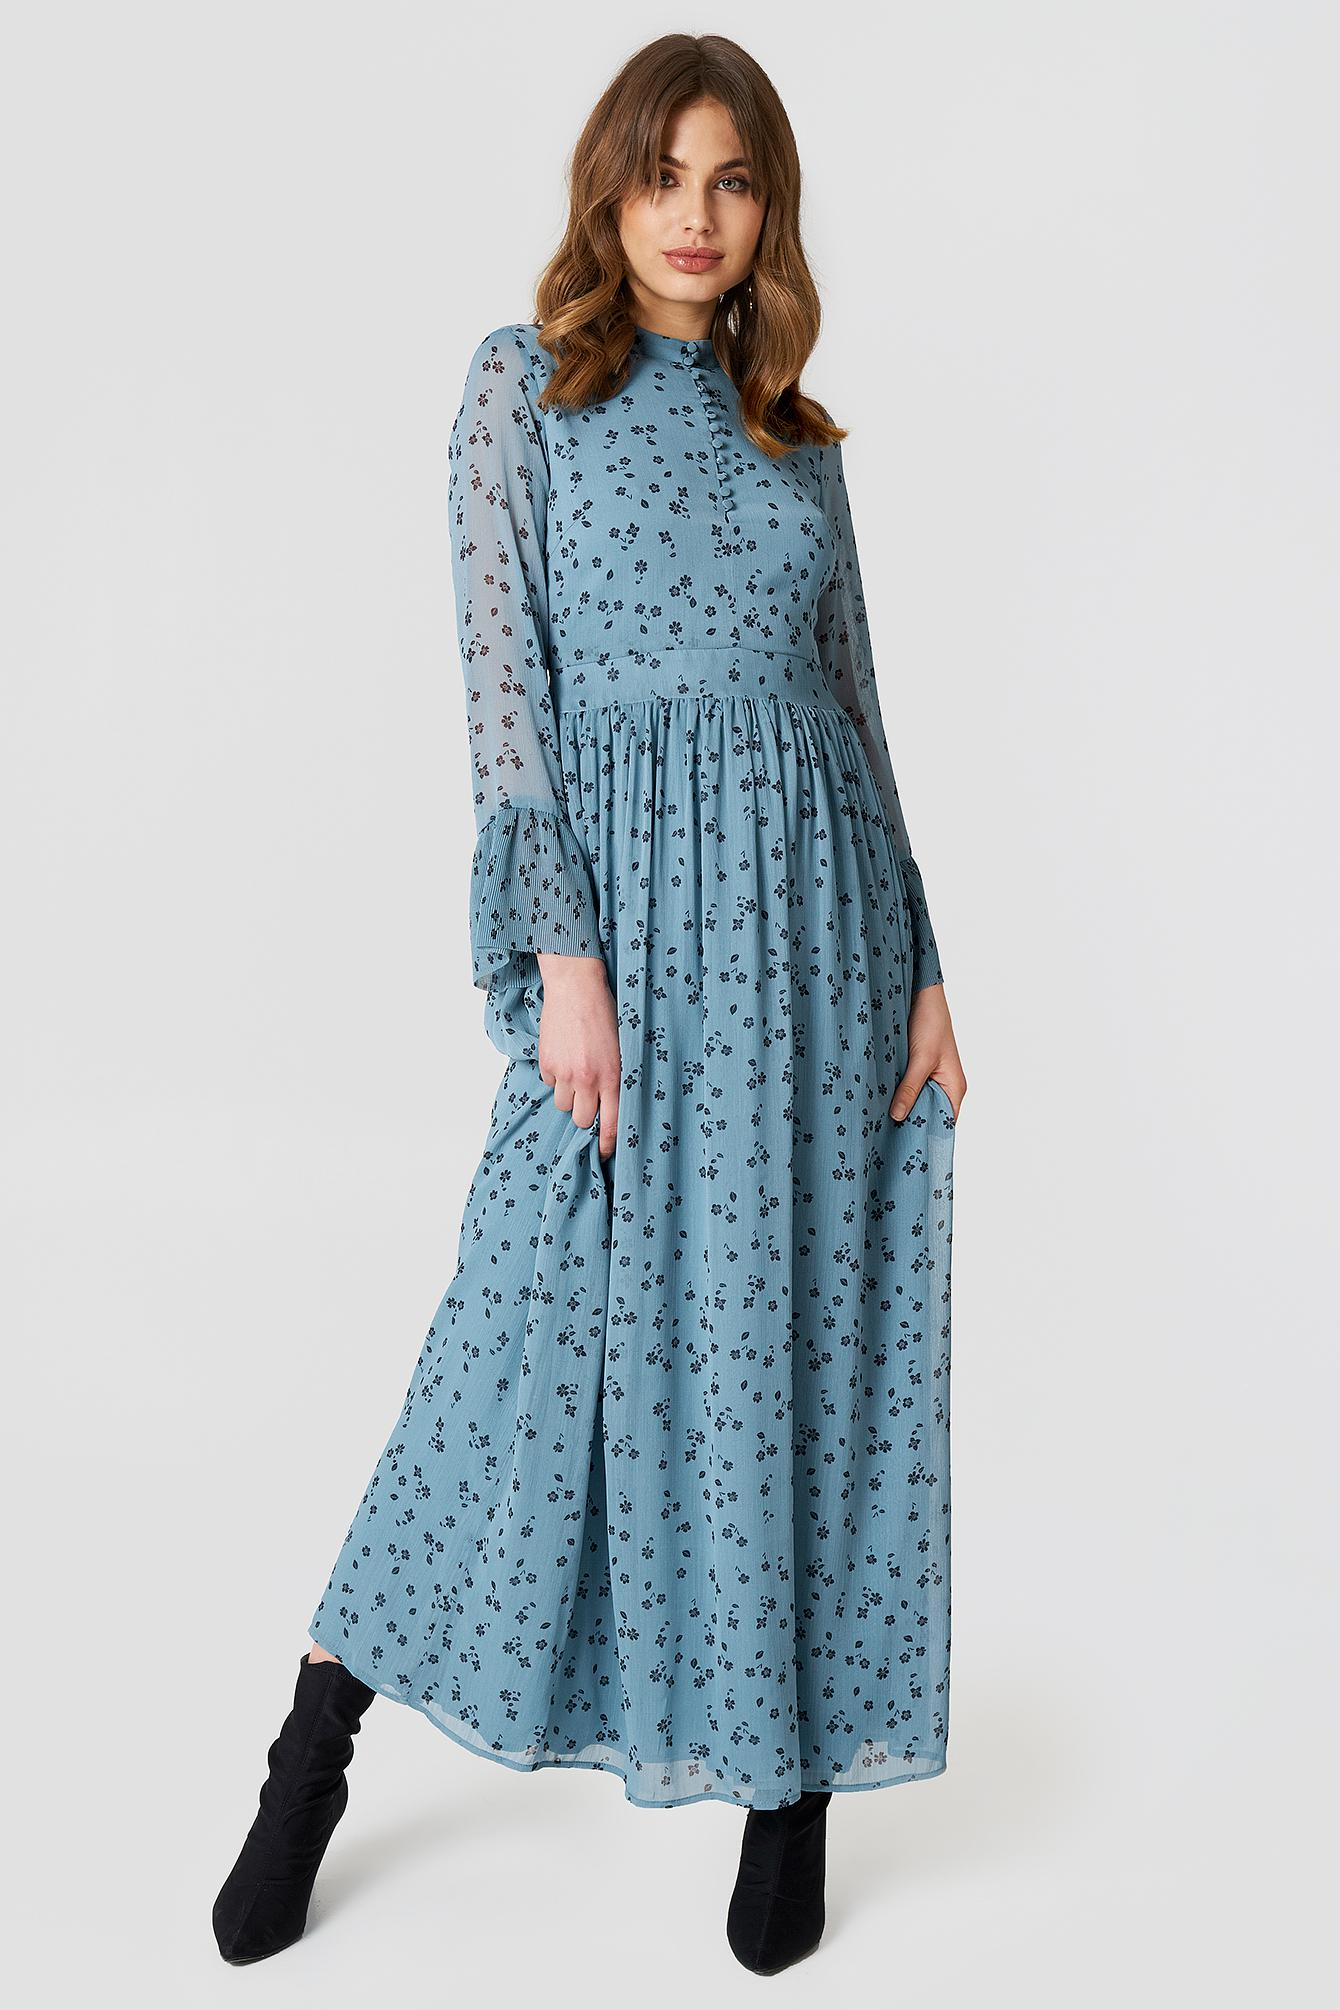 720827d68c9 Gestuz Jeanett Long Dress in Blue - Lyst